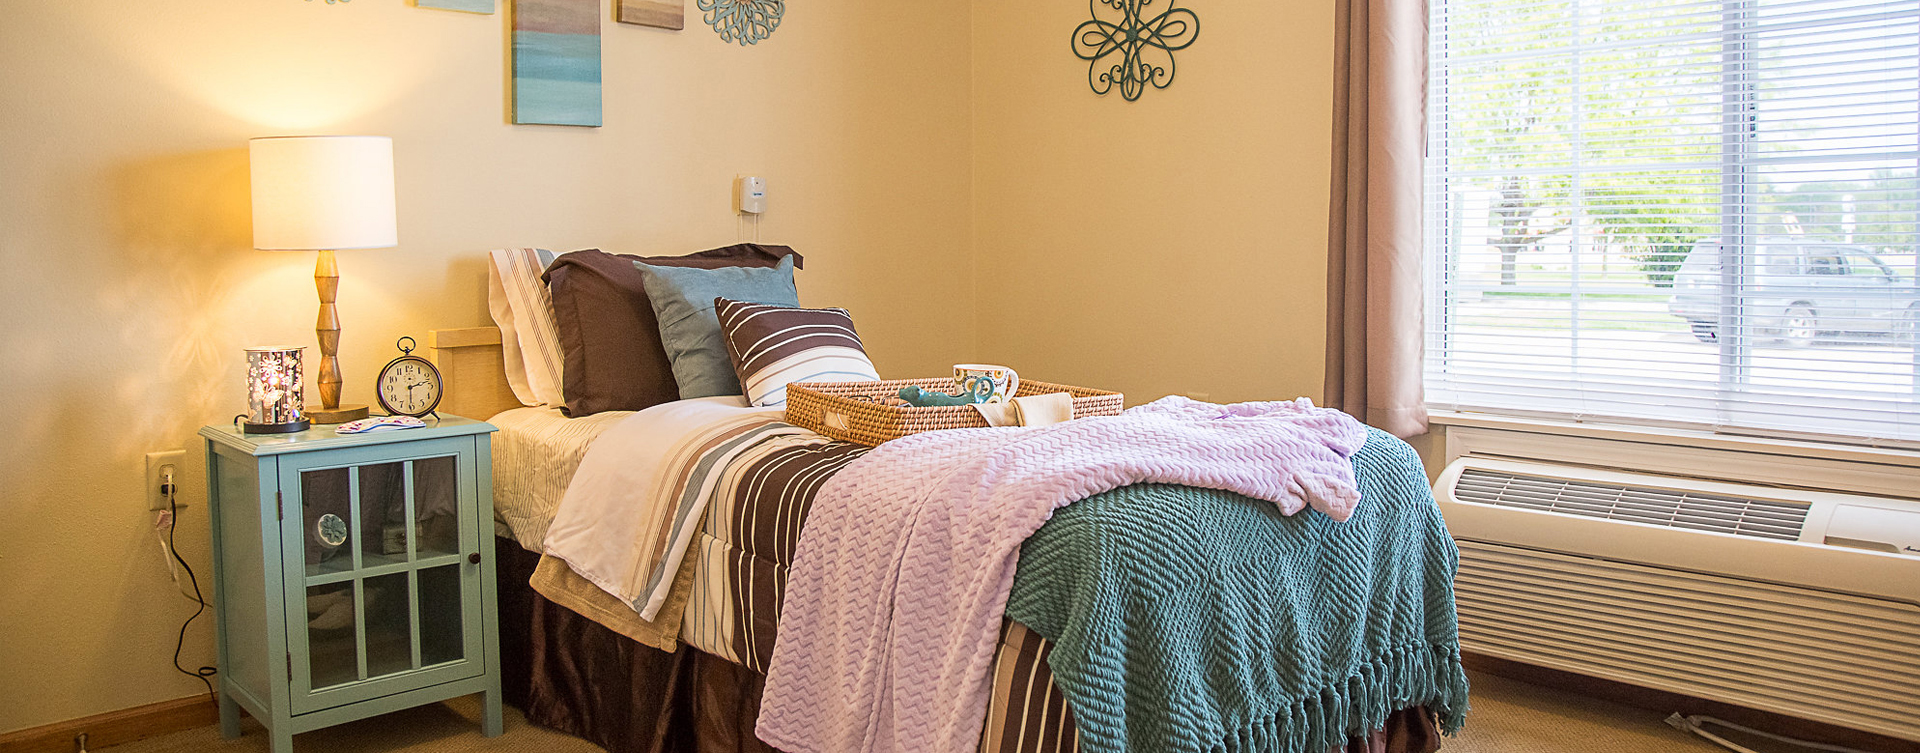 Get a new lease on life with a cozy apartment at Bickford of Clinton